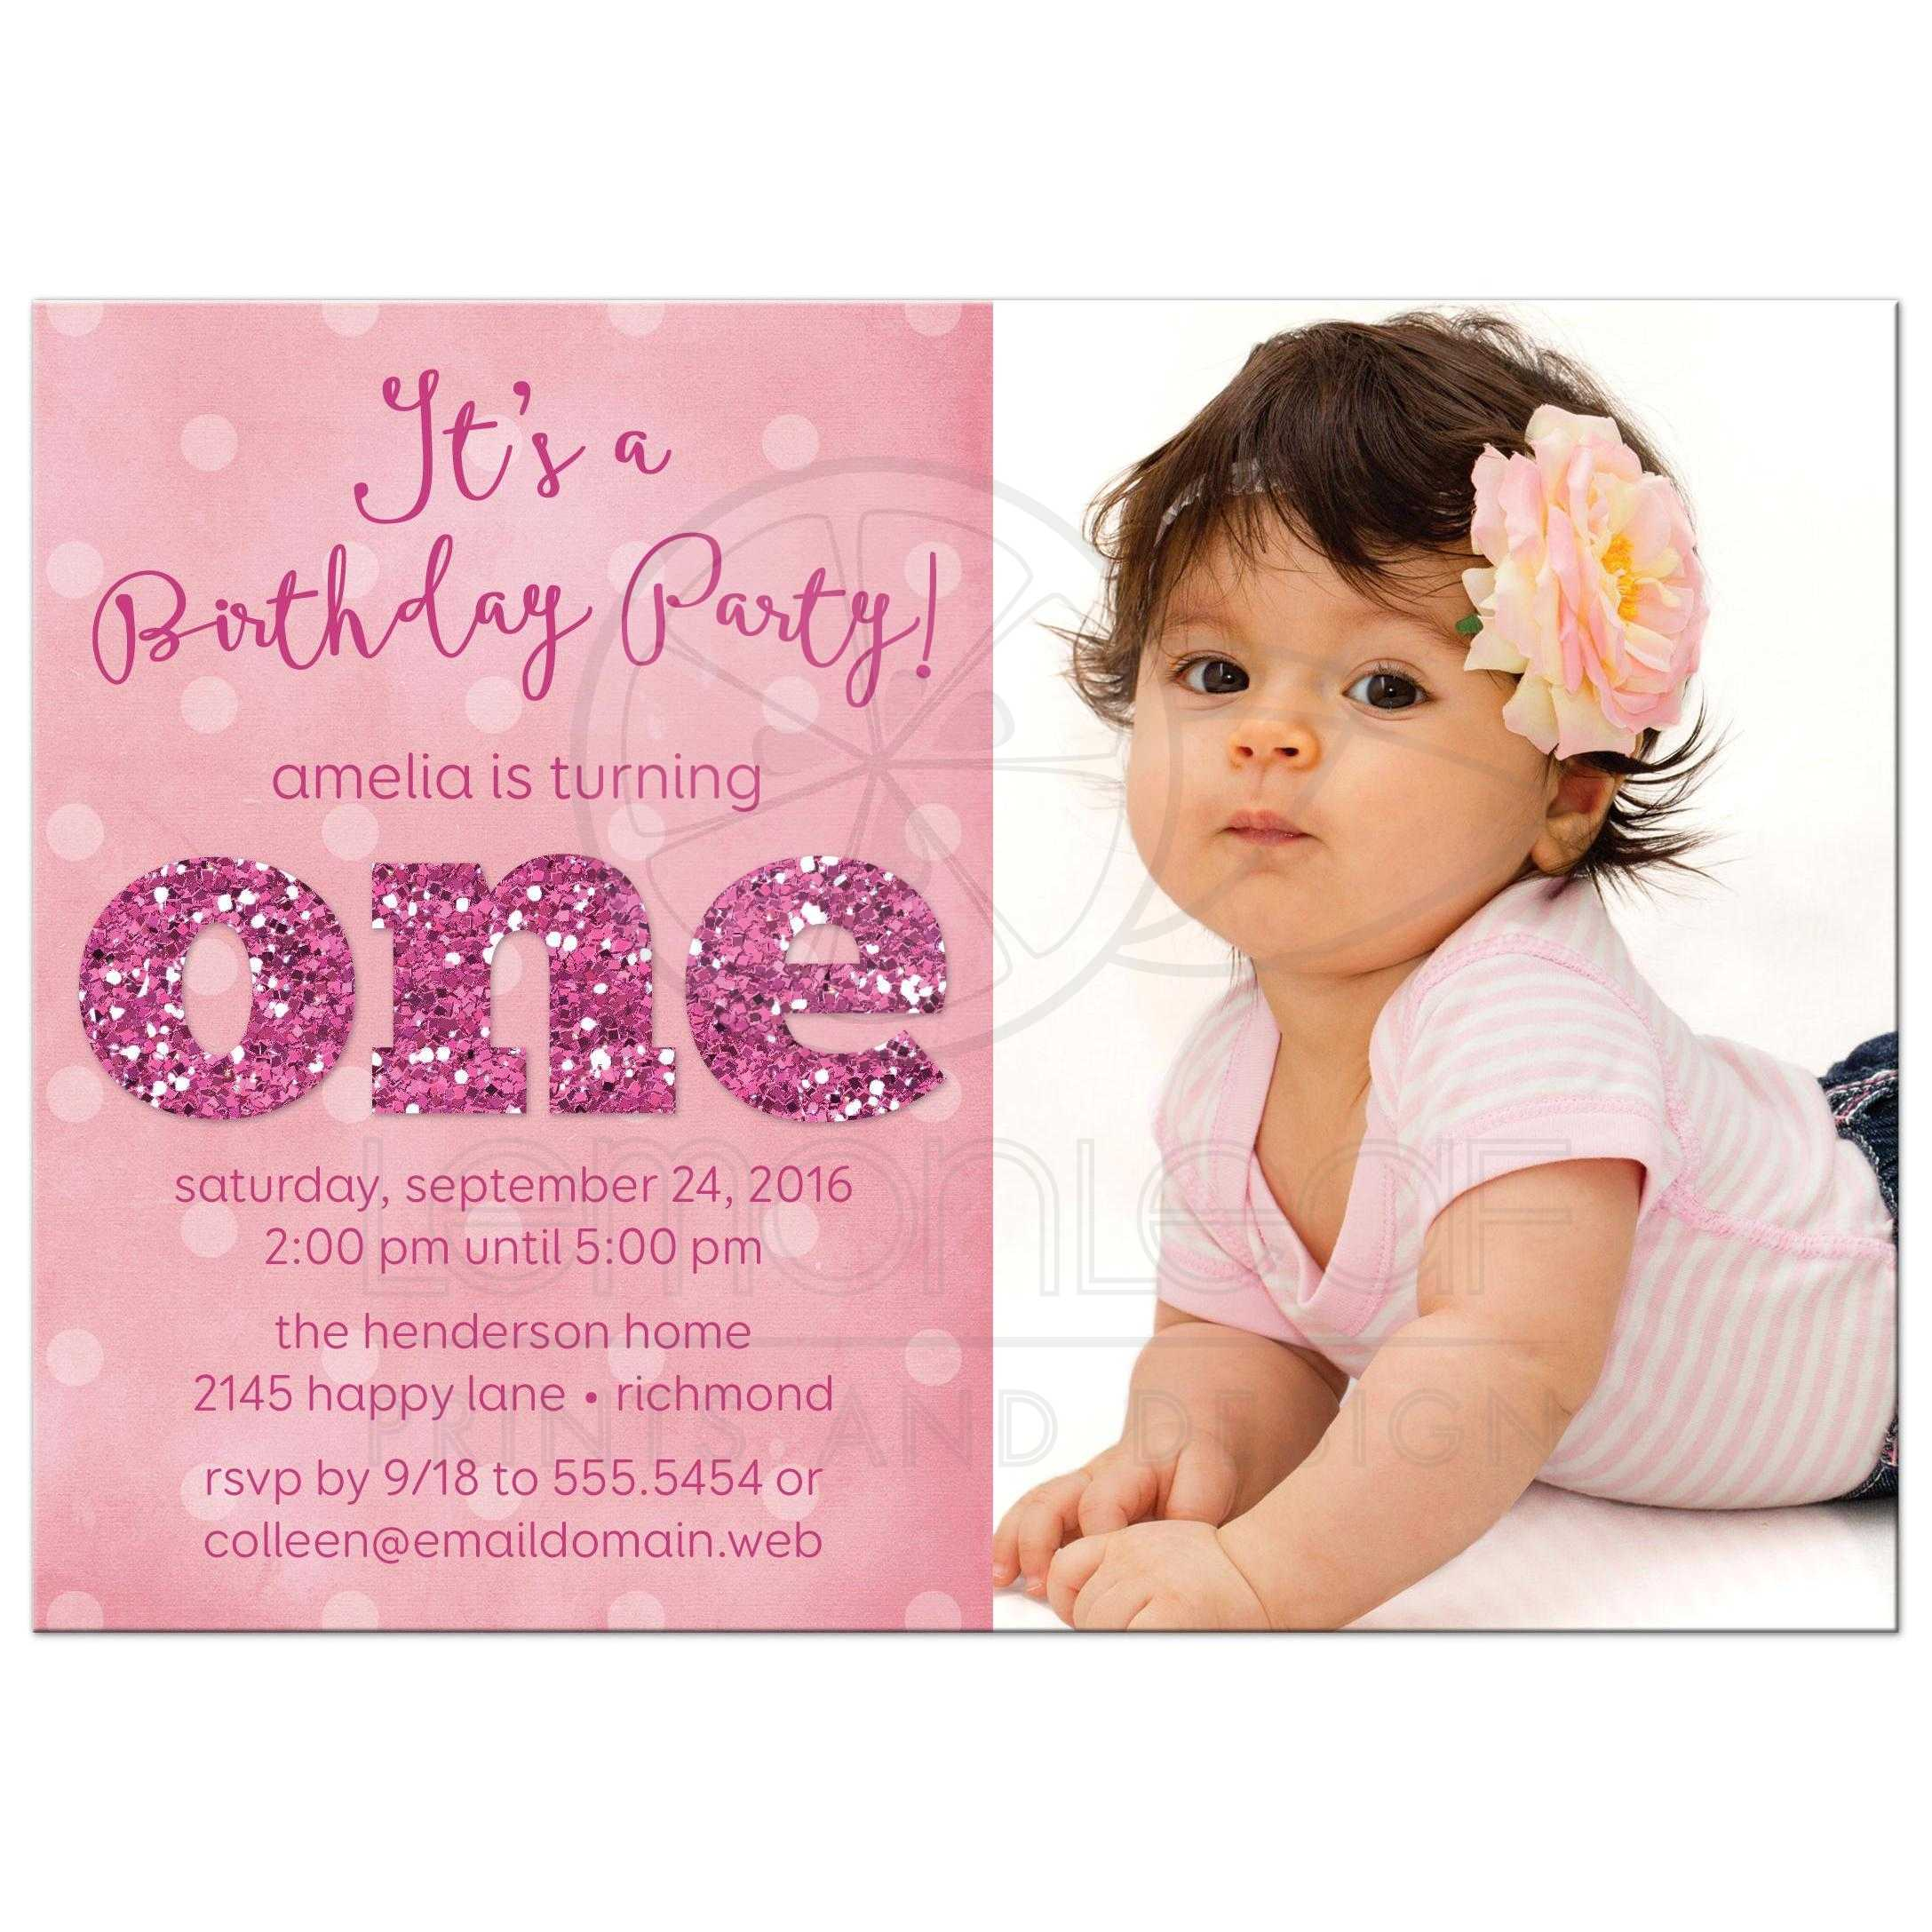 Strange Invitation Card For First Birthday Party Cobypic Com Funny Birthday Cards Online Inifofree Goldxyz